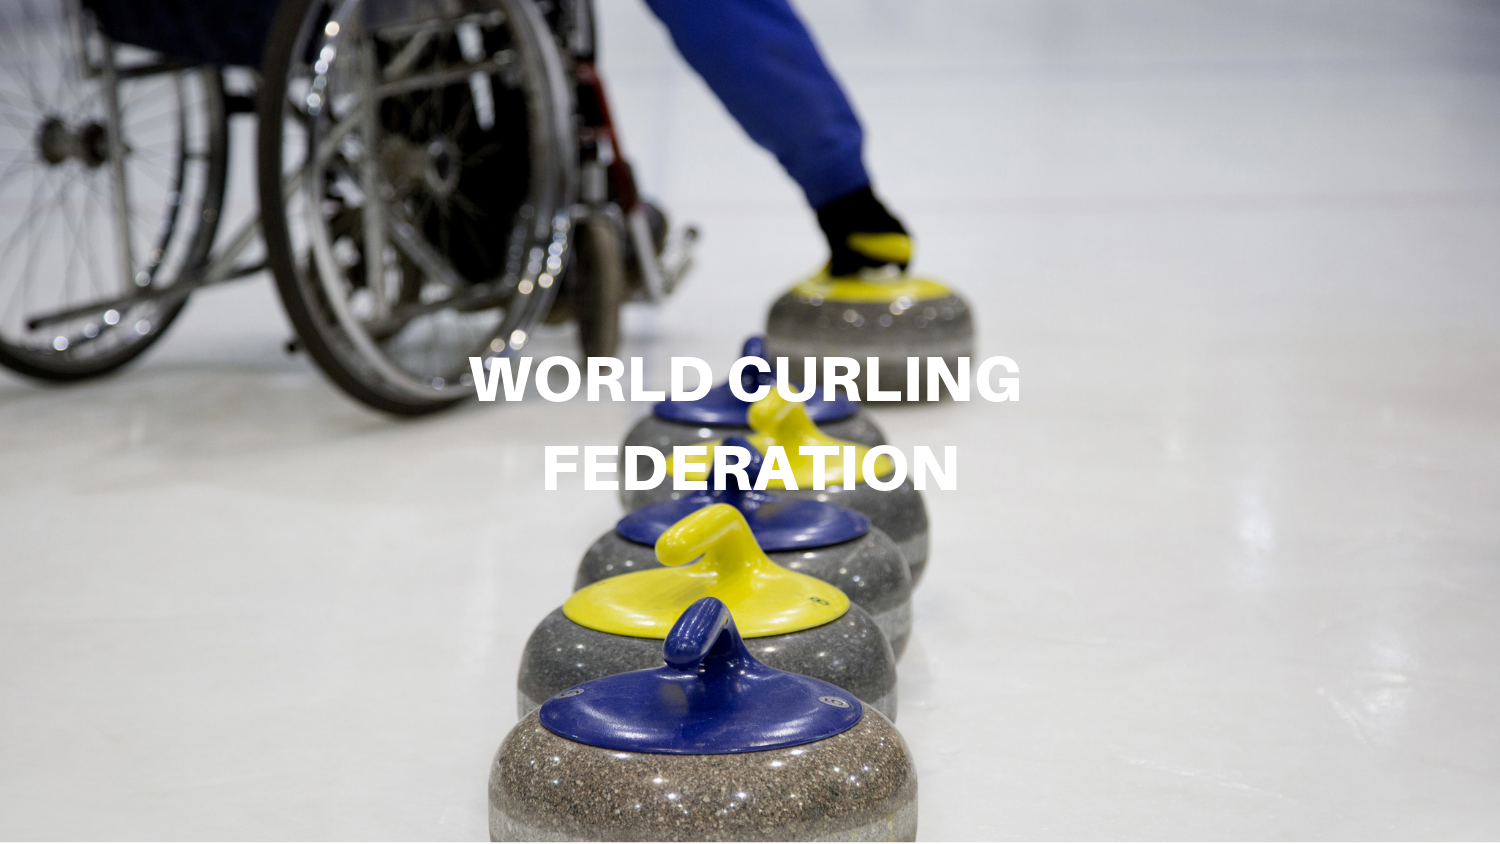 World Curling Federation - Taking wheelchair curling to another level